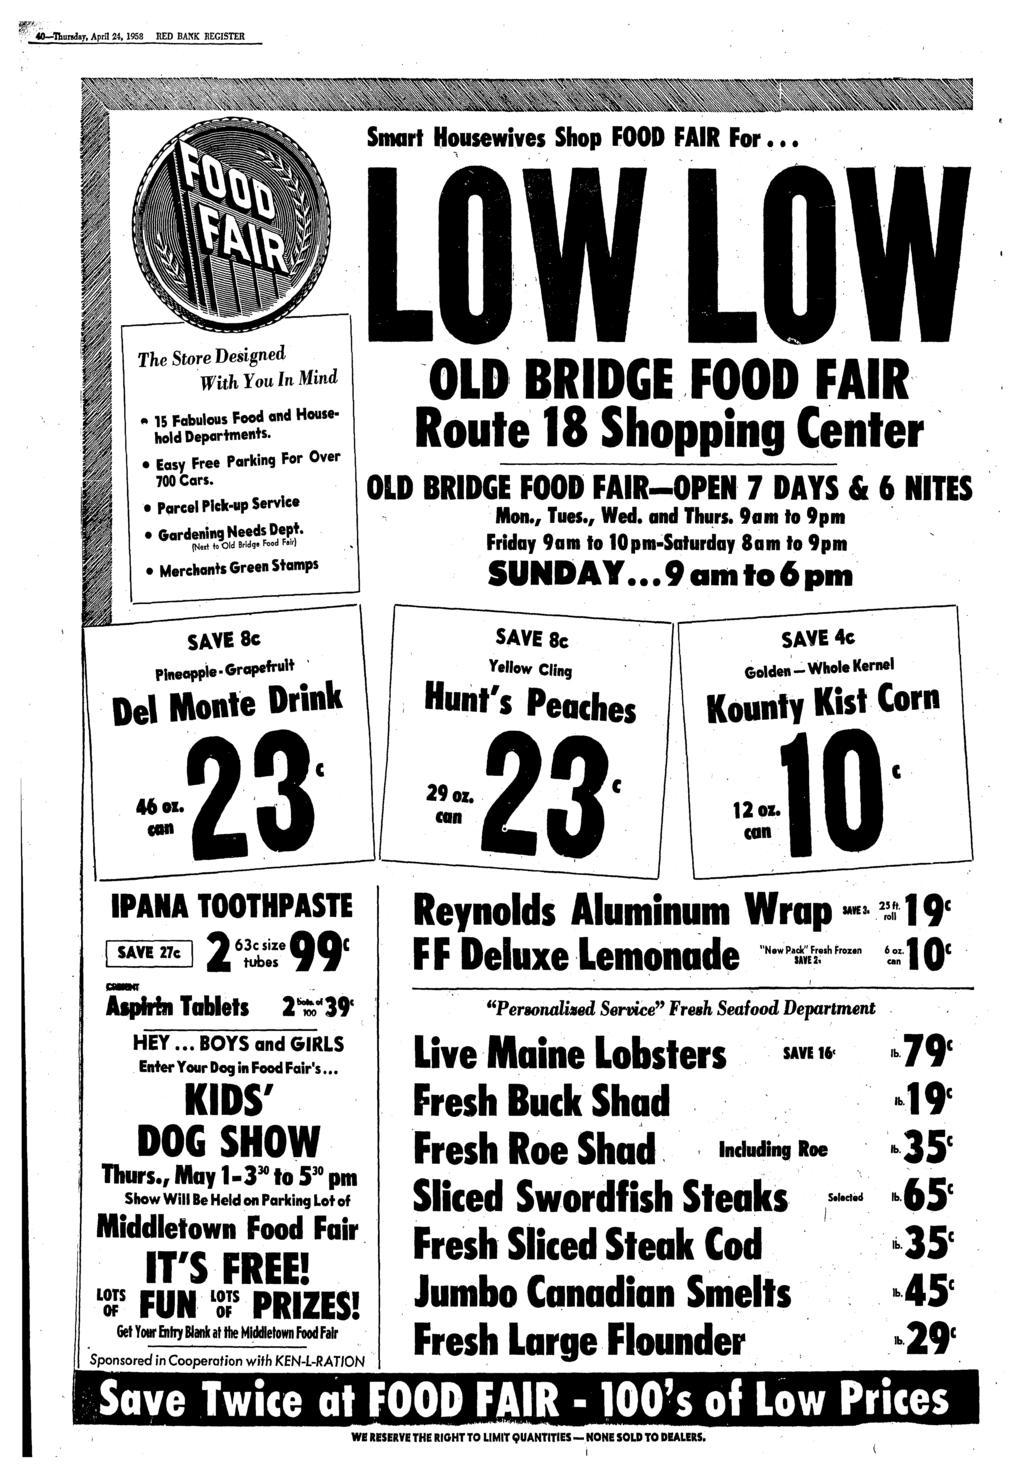 , April 24, 1958 REGISTER Smart Housewives Shop FOOD FAIR For... The Store Designed With You In Mind m 15 Fabulous Food and Household Departments. Easy Free Parking For Over 700 Cars.